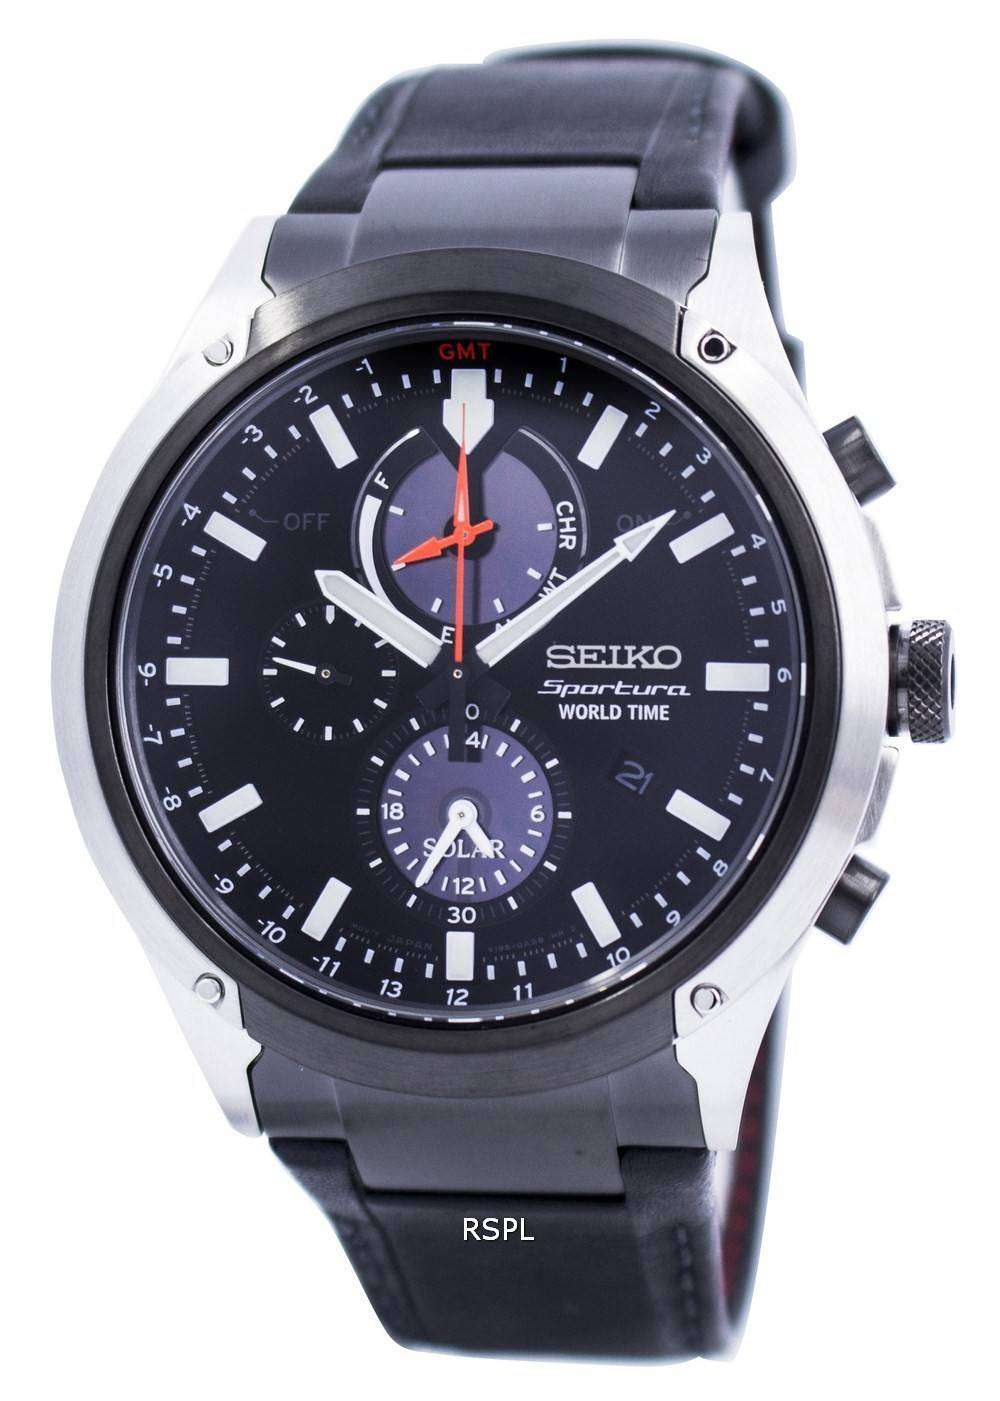 seiko sportura world time solar chronograph ssc483. Black Bedroom Furniture Sets. Home Design Ideas